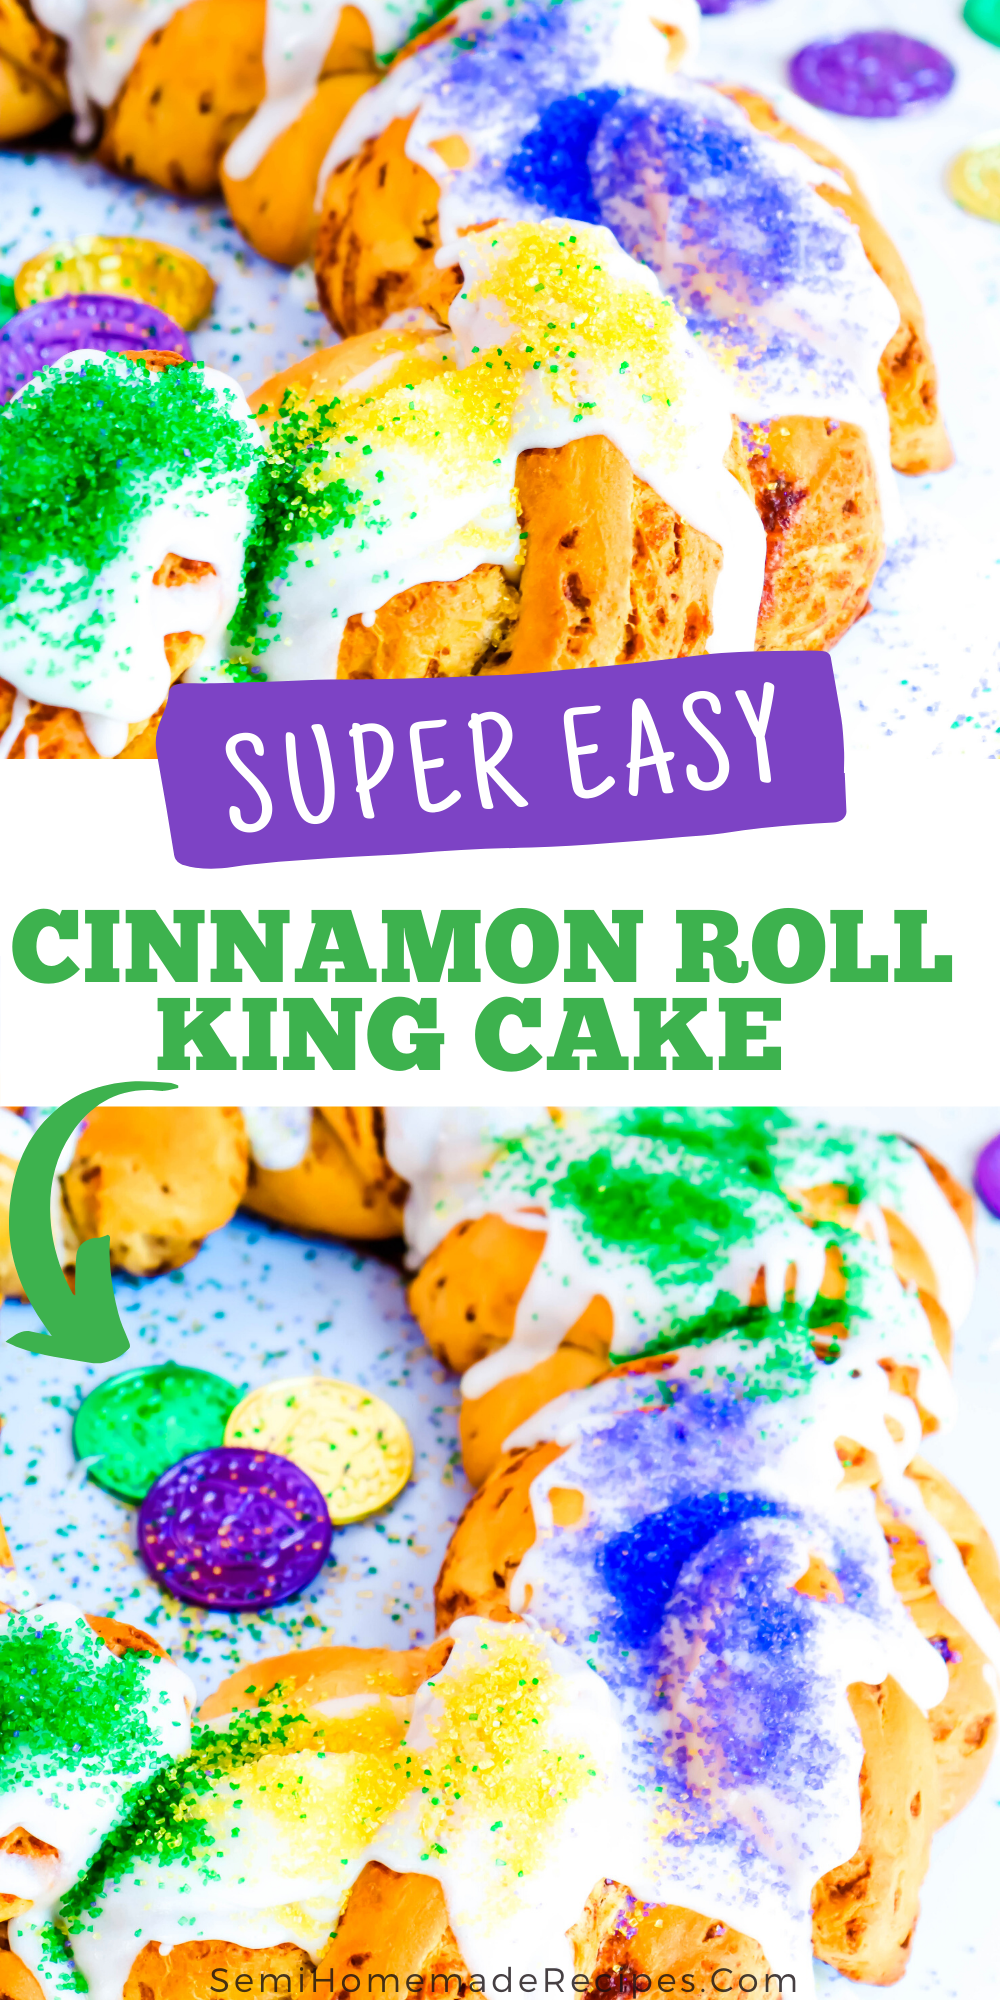 Celebrate Mardi Gras at home with this fun and Easy Cinnamon Roll King Cake! Made with cinnamon rolls, topping with icing and Mardi Gras color themed sugar for easiest king cake ever!